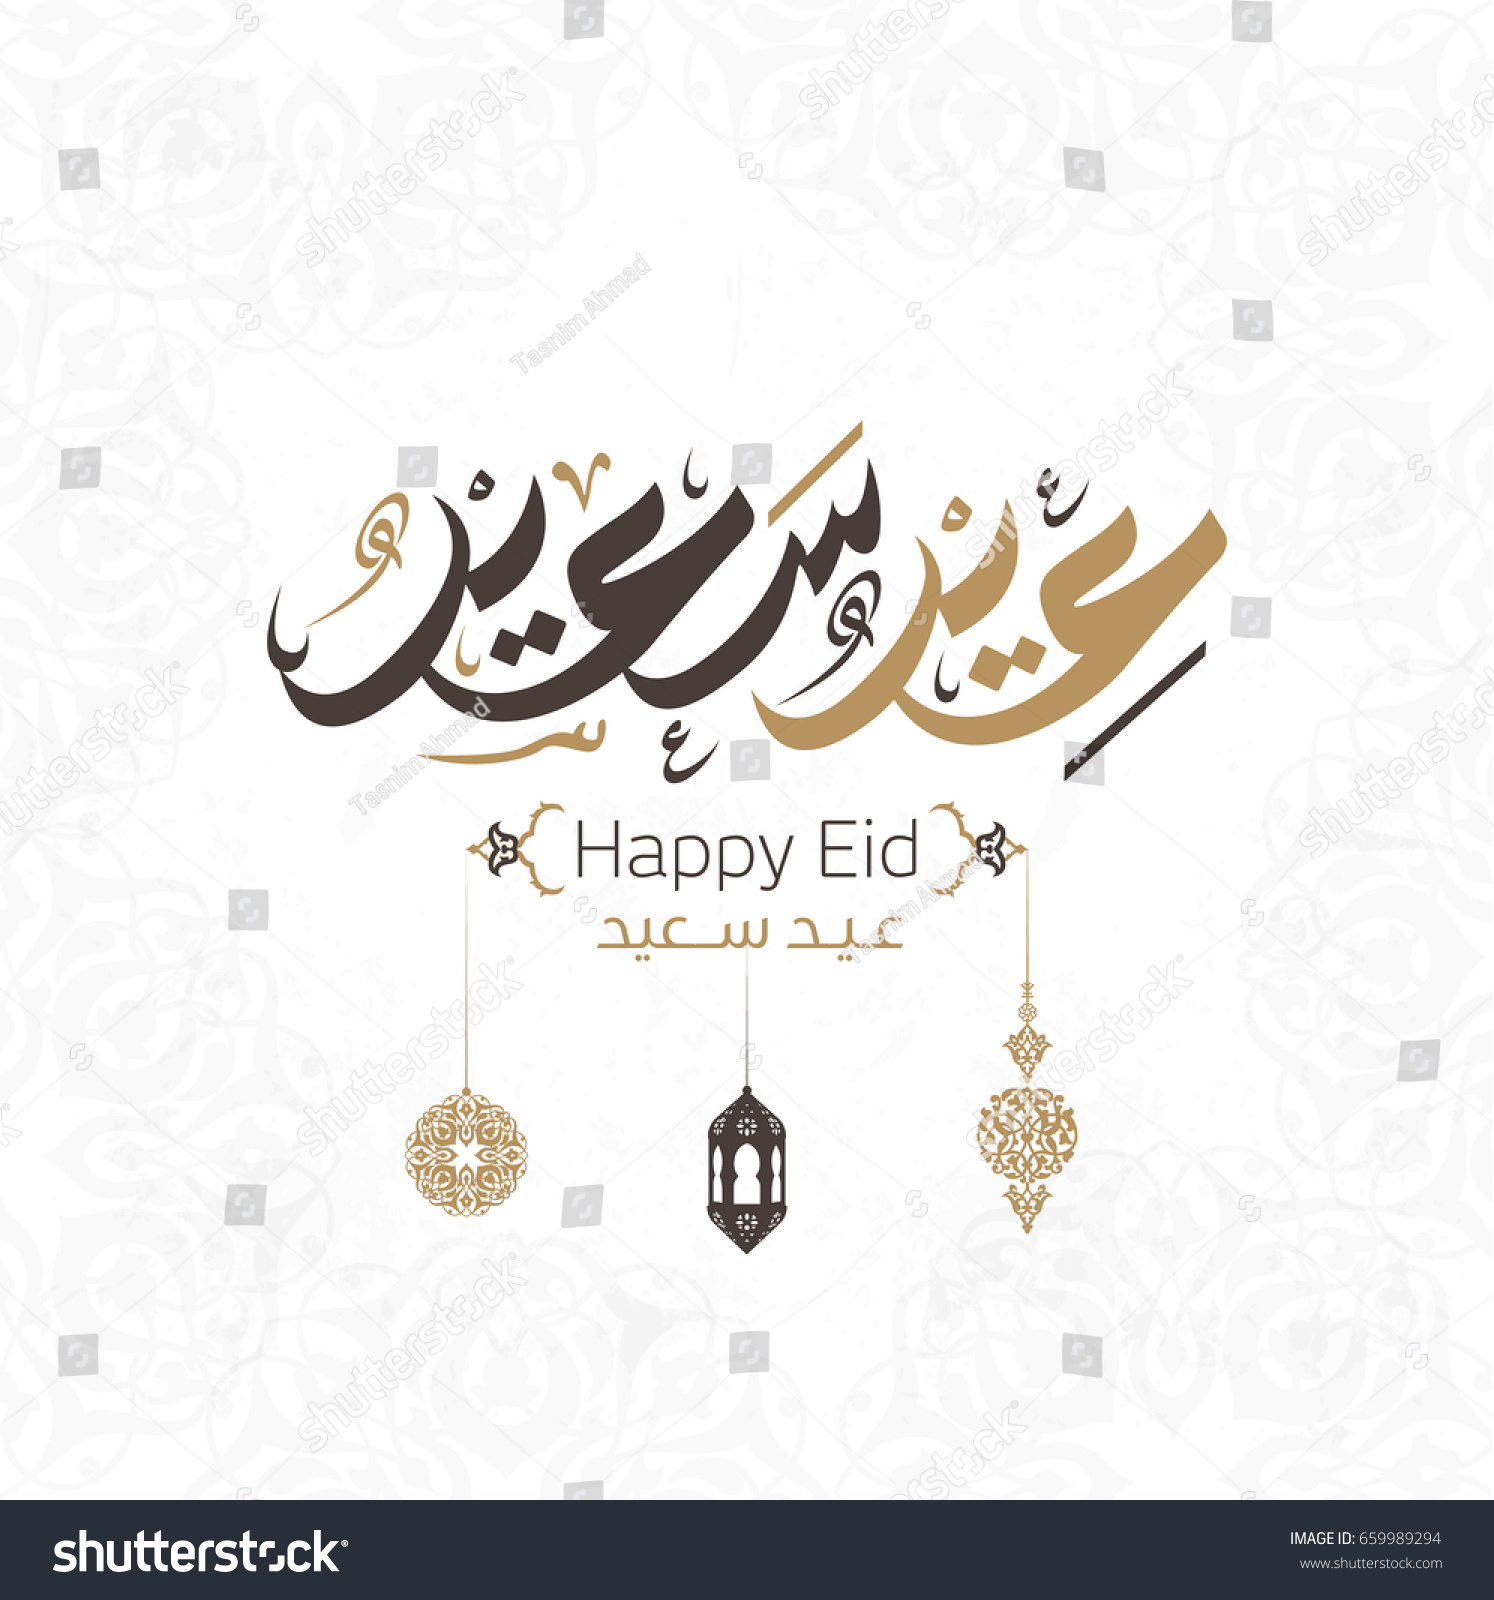 Happy Eid Greeting Card Arabic Calligraphy Stock Vector Royalty